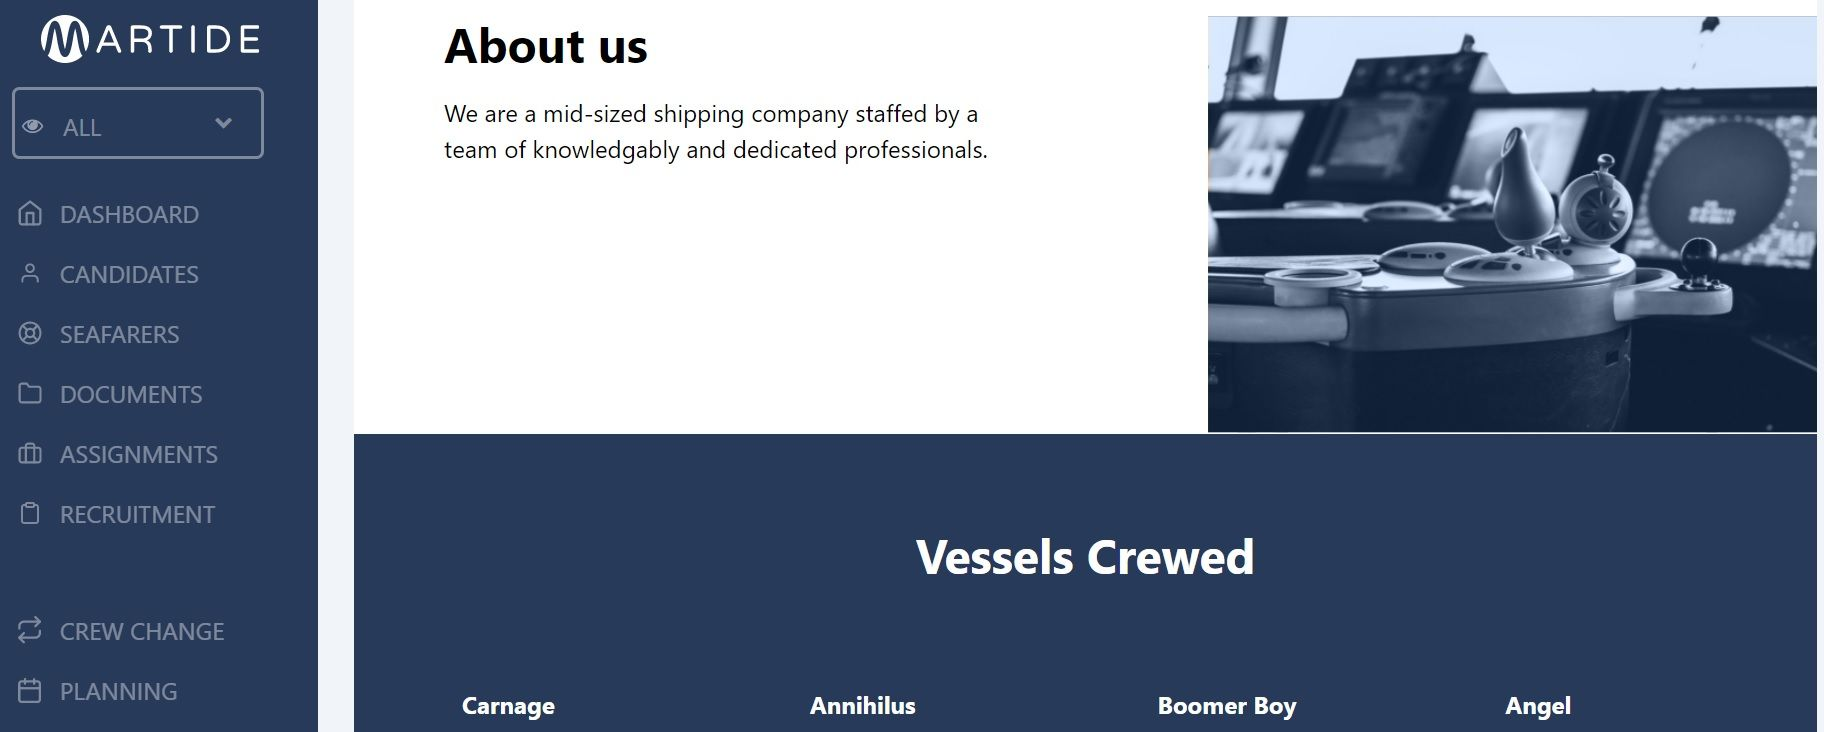 screenshot of the public about us and vessels crewed sections.